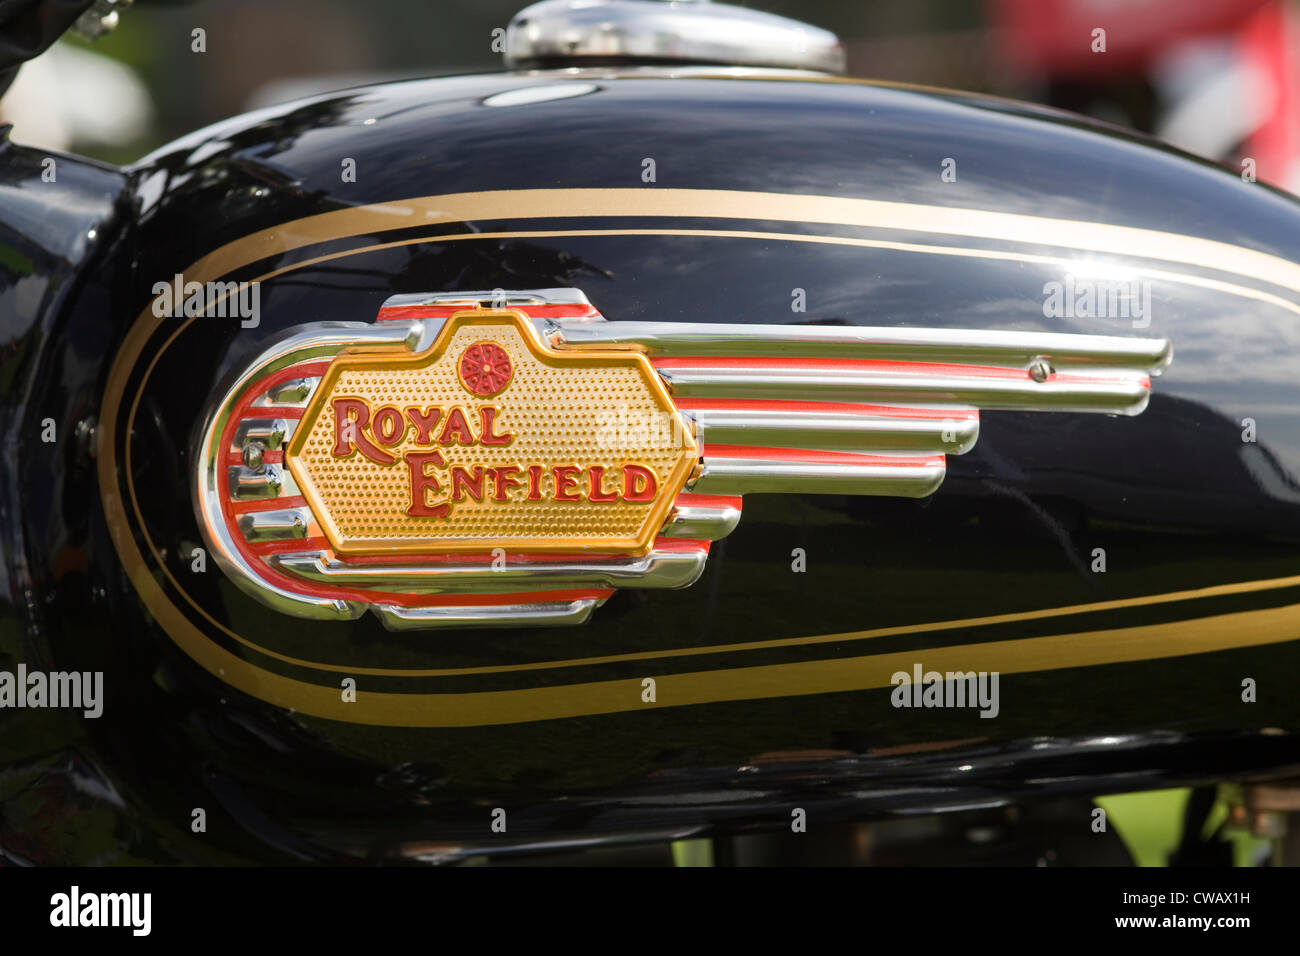 Royal Enfield motorbike Tank Decal Badge at a show ground in England